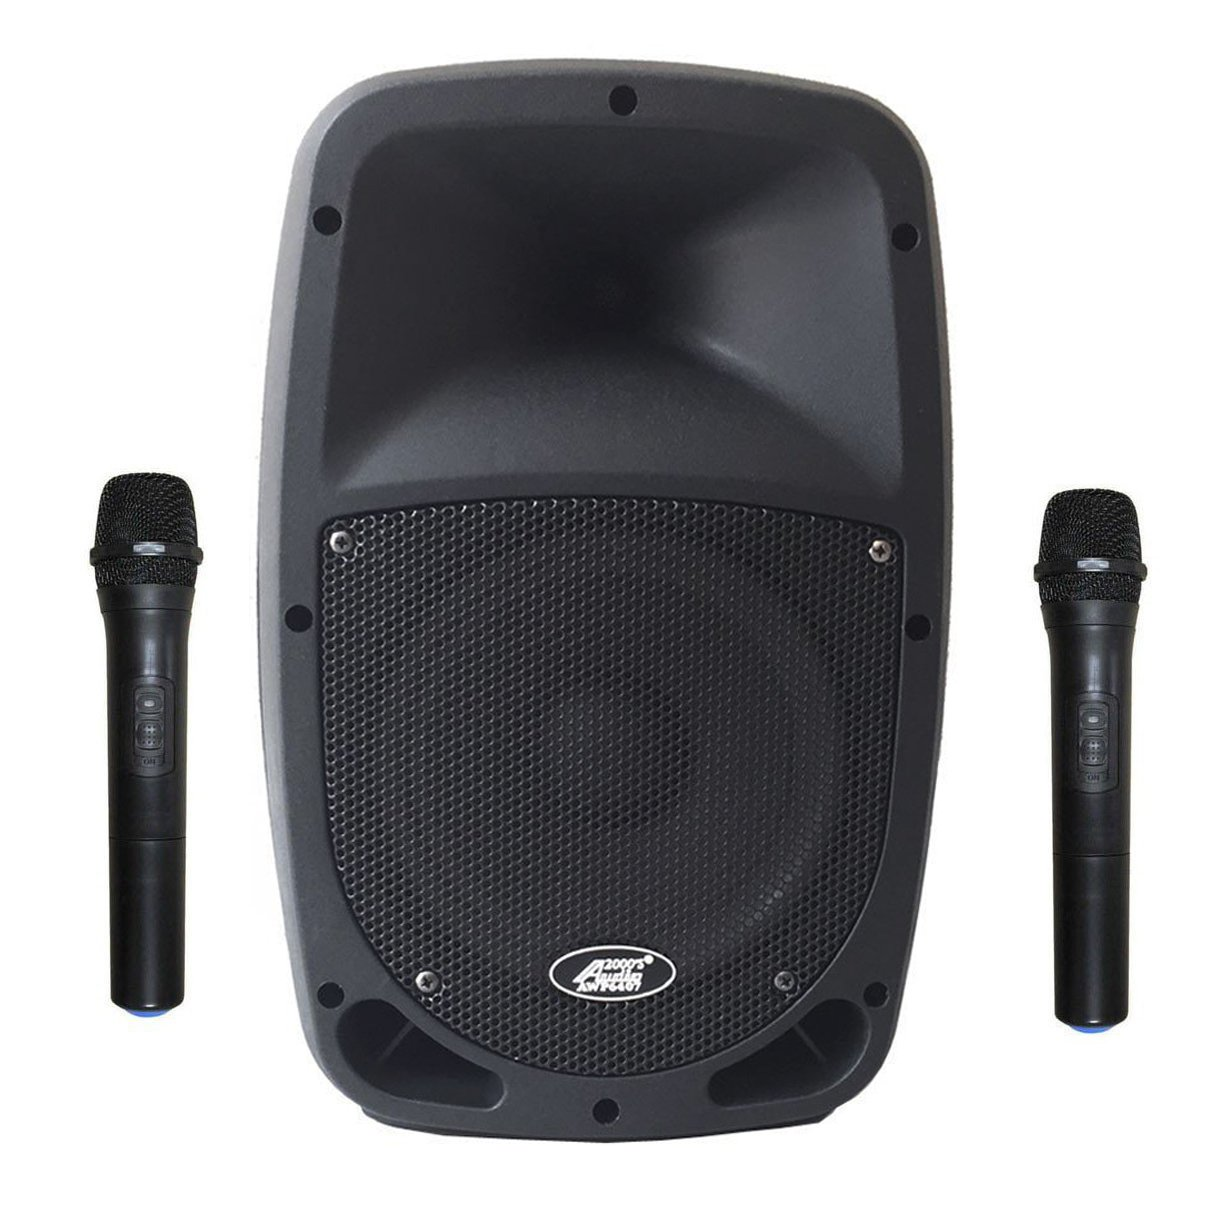 Audio 2000S 6407HH 8 Dual Channel Wireless Microphone Bluetooth Portable PA System with 2 Handhelds Audio2000' s